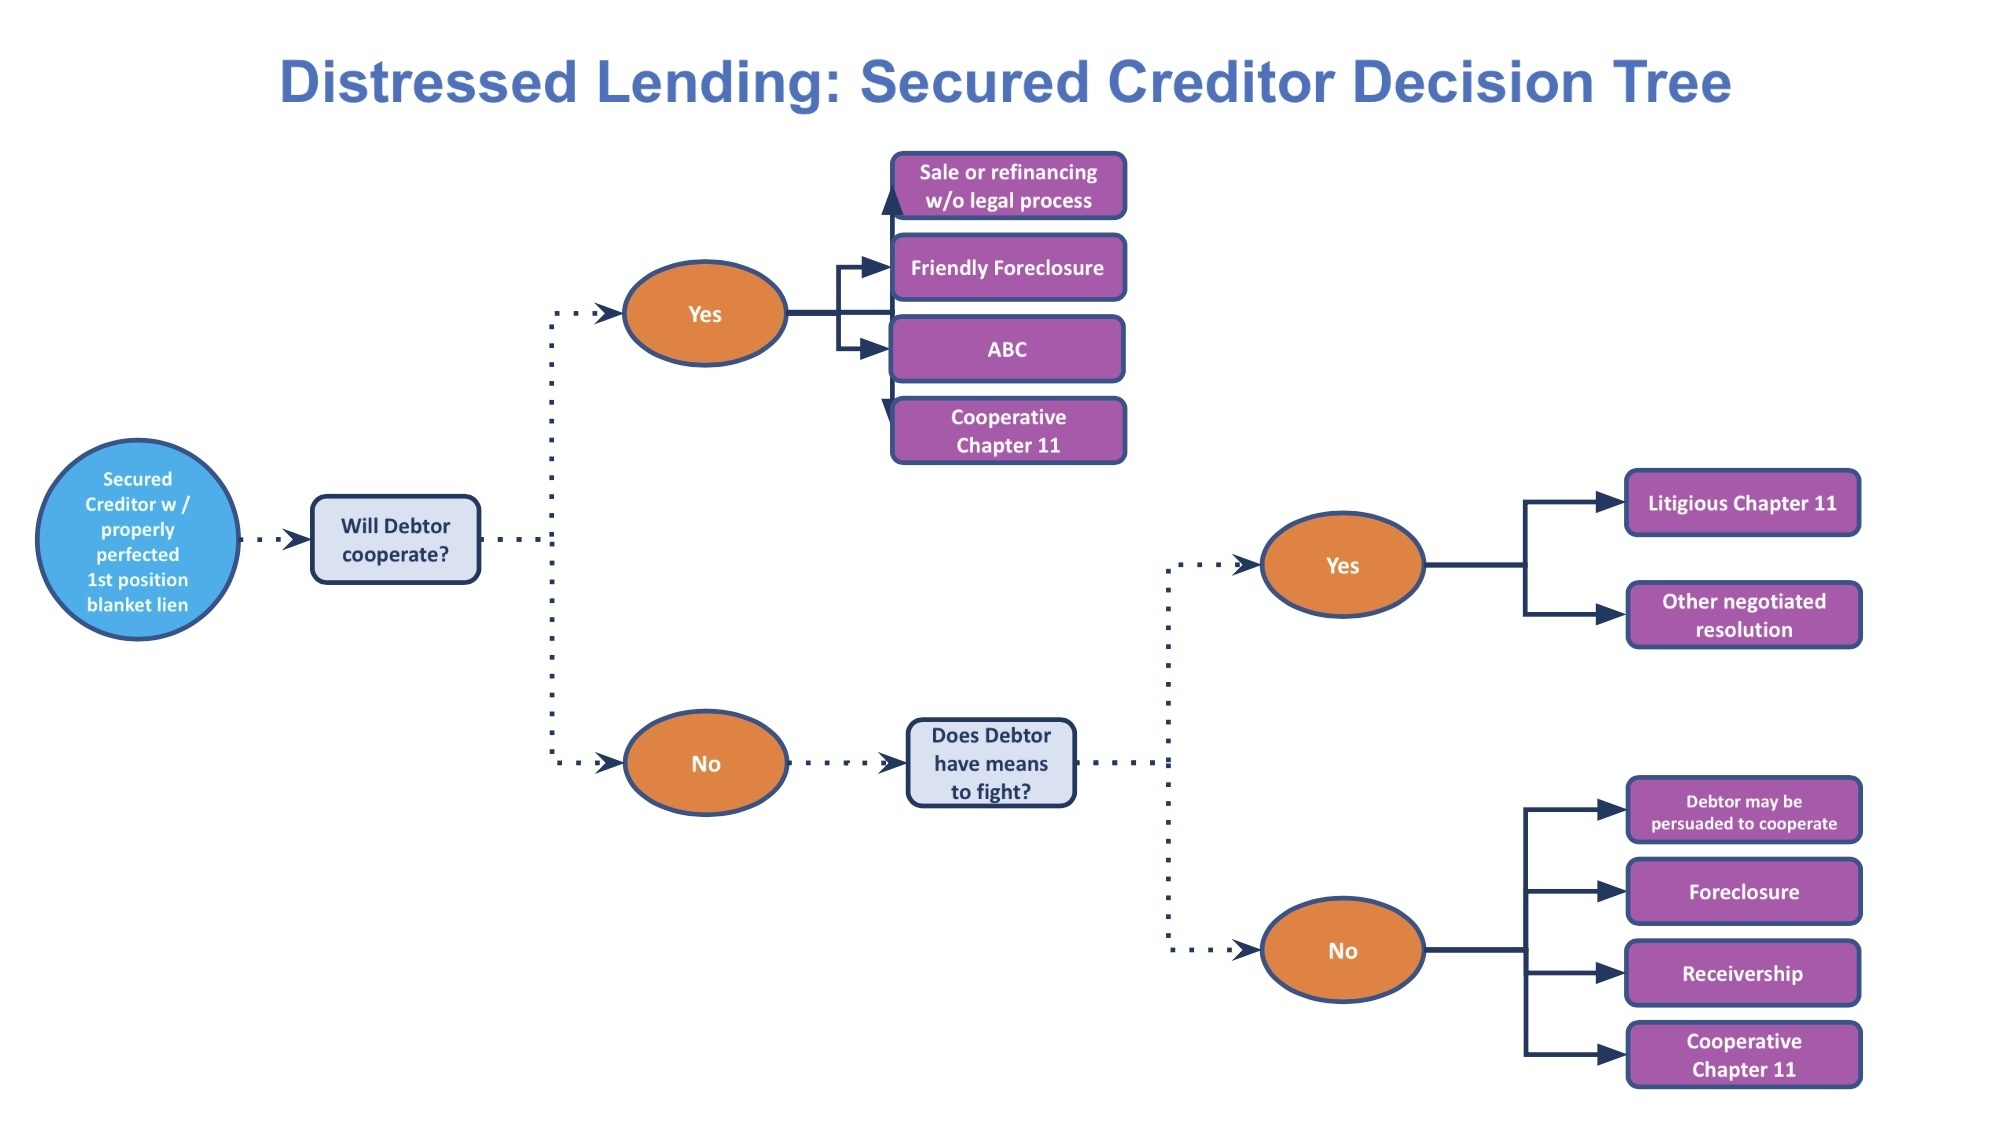 Distressed Lending Secured Creditor Decision Tree